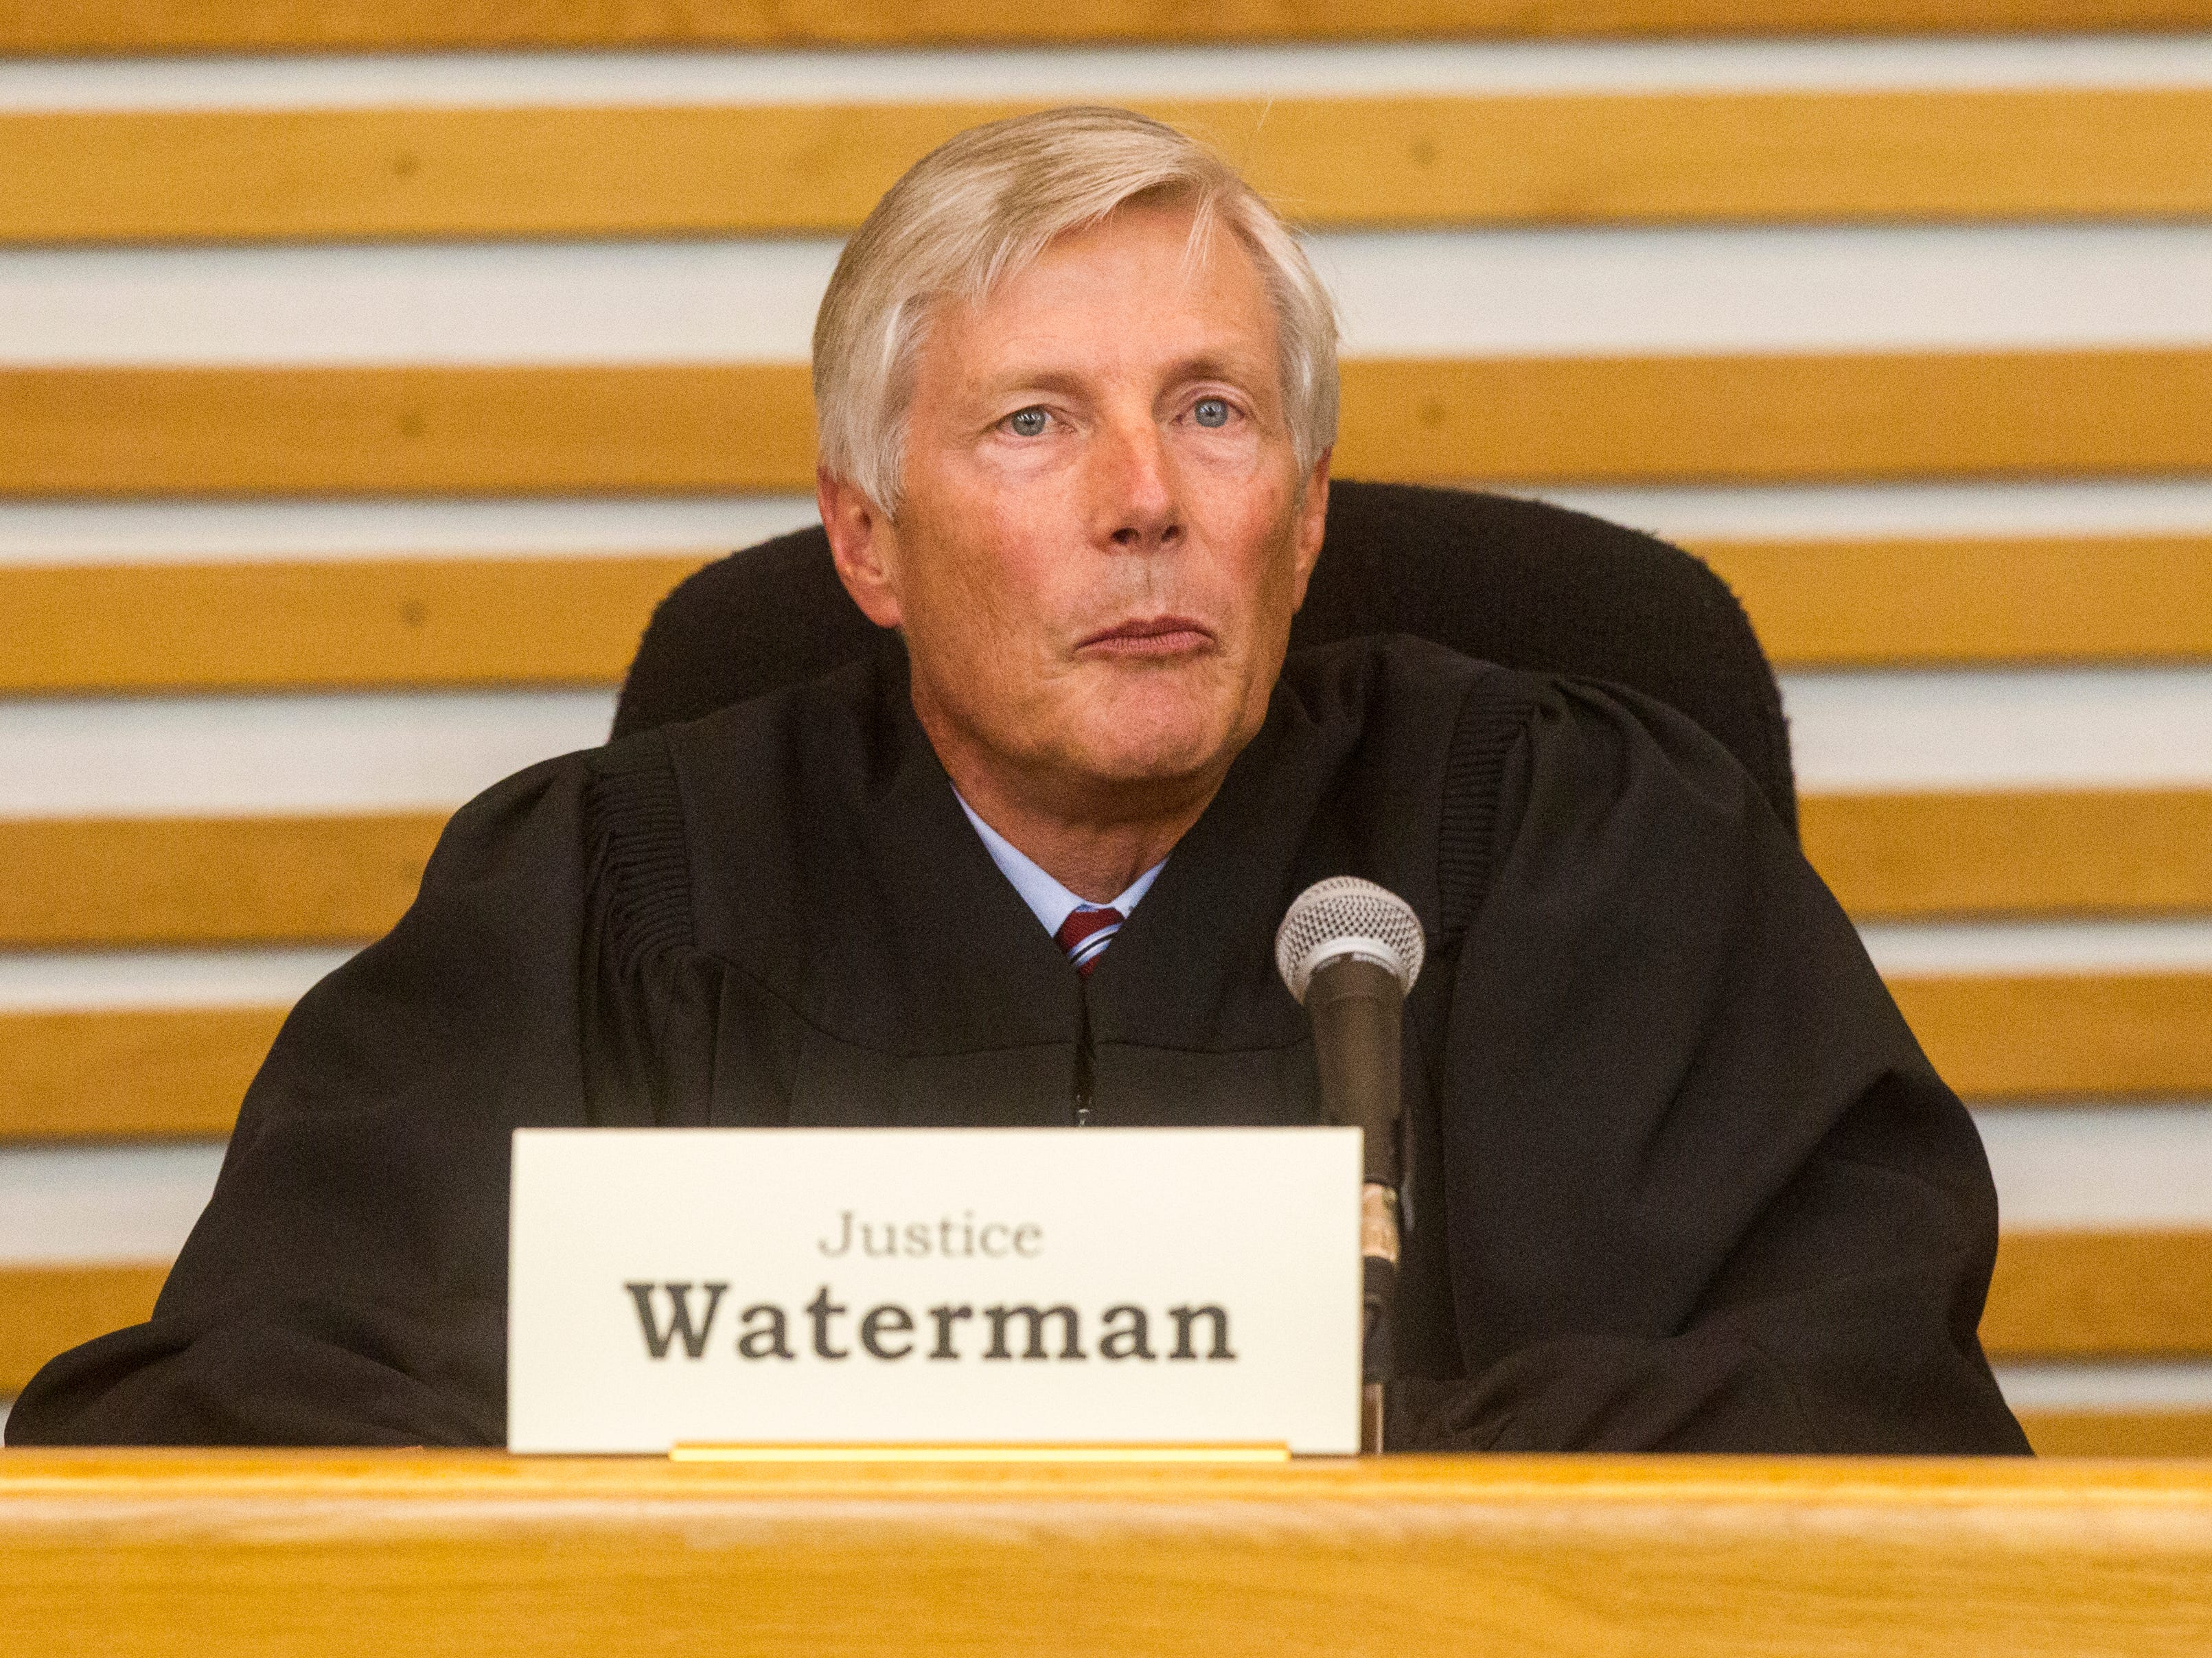 Justice Thomas Waterman of the Iowa Supreme Court speaks while oral arguments are presented on Friday, Sept. 7, 2018, at Levitt Auditorium inside the Boyd Law Building on the University of Iowa campus in Iowa City.